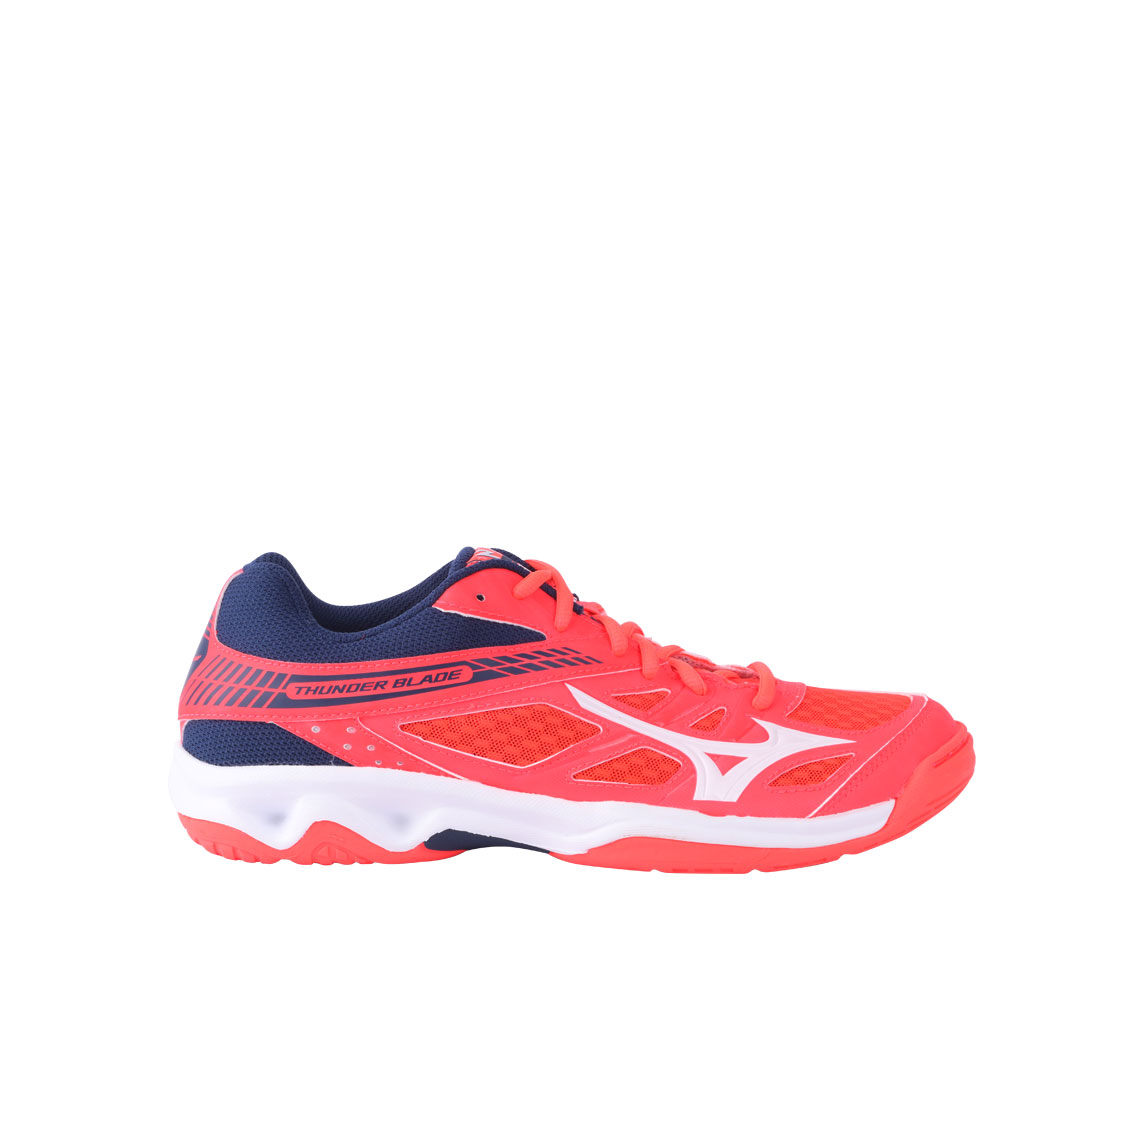 THUNDER BLADE-FIERY CORAL /WHITE/ESTATE BLUE